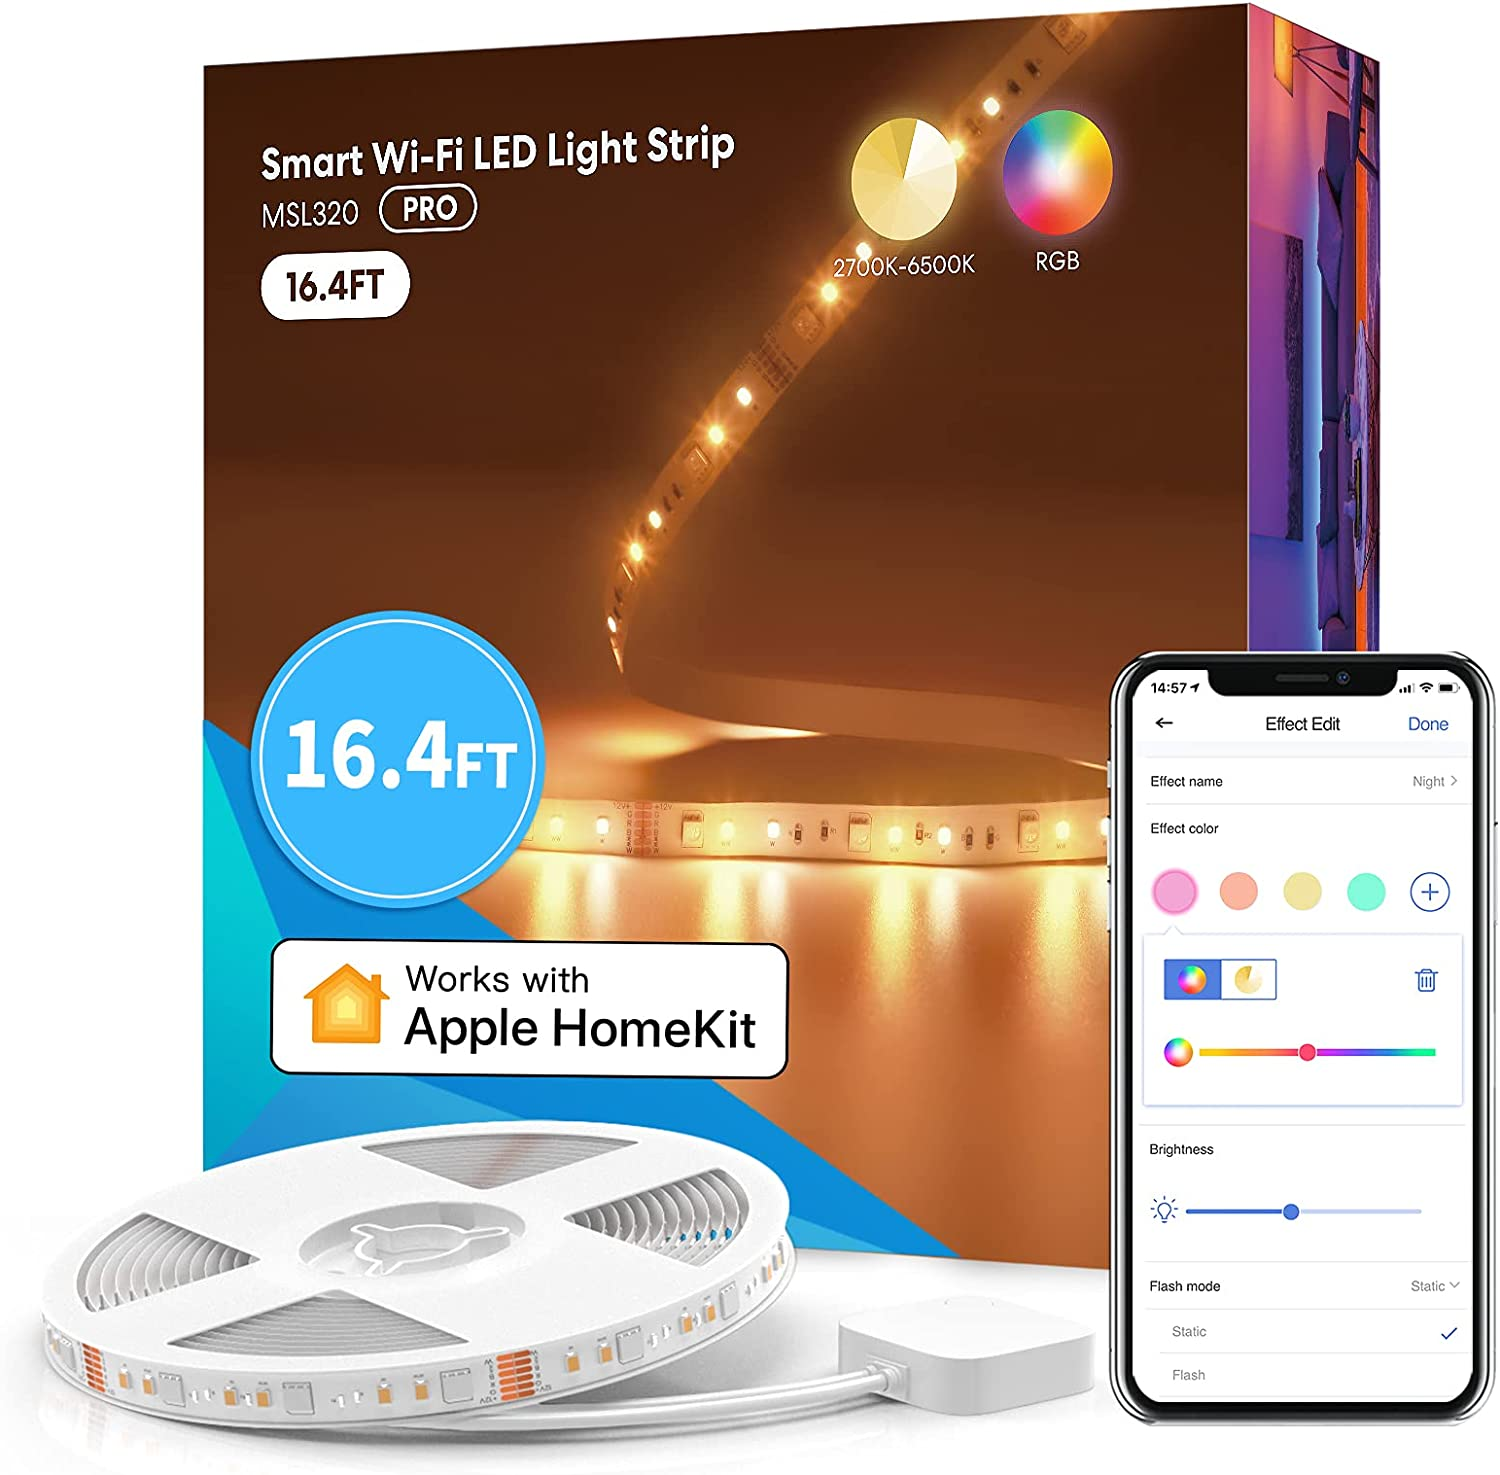 meross Smart Pro LED Strip Lights, 16.4ft RGBW WiFi LED Strip Work with Apple HomeKit, Alexa, Google Home and SmartThings, Warm and Cool White, Led Lights for Bedroom, TV, Party [Upgrade Version]